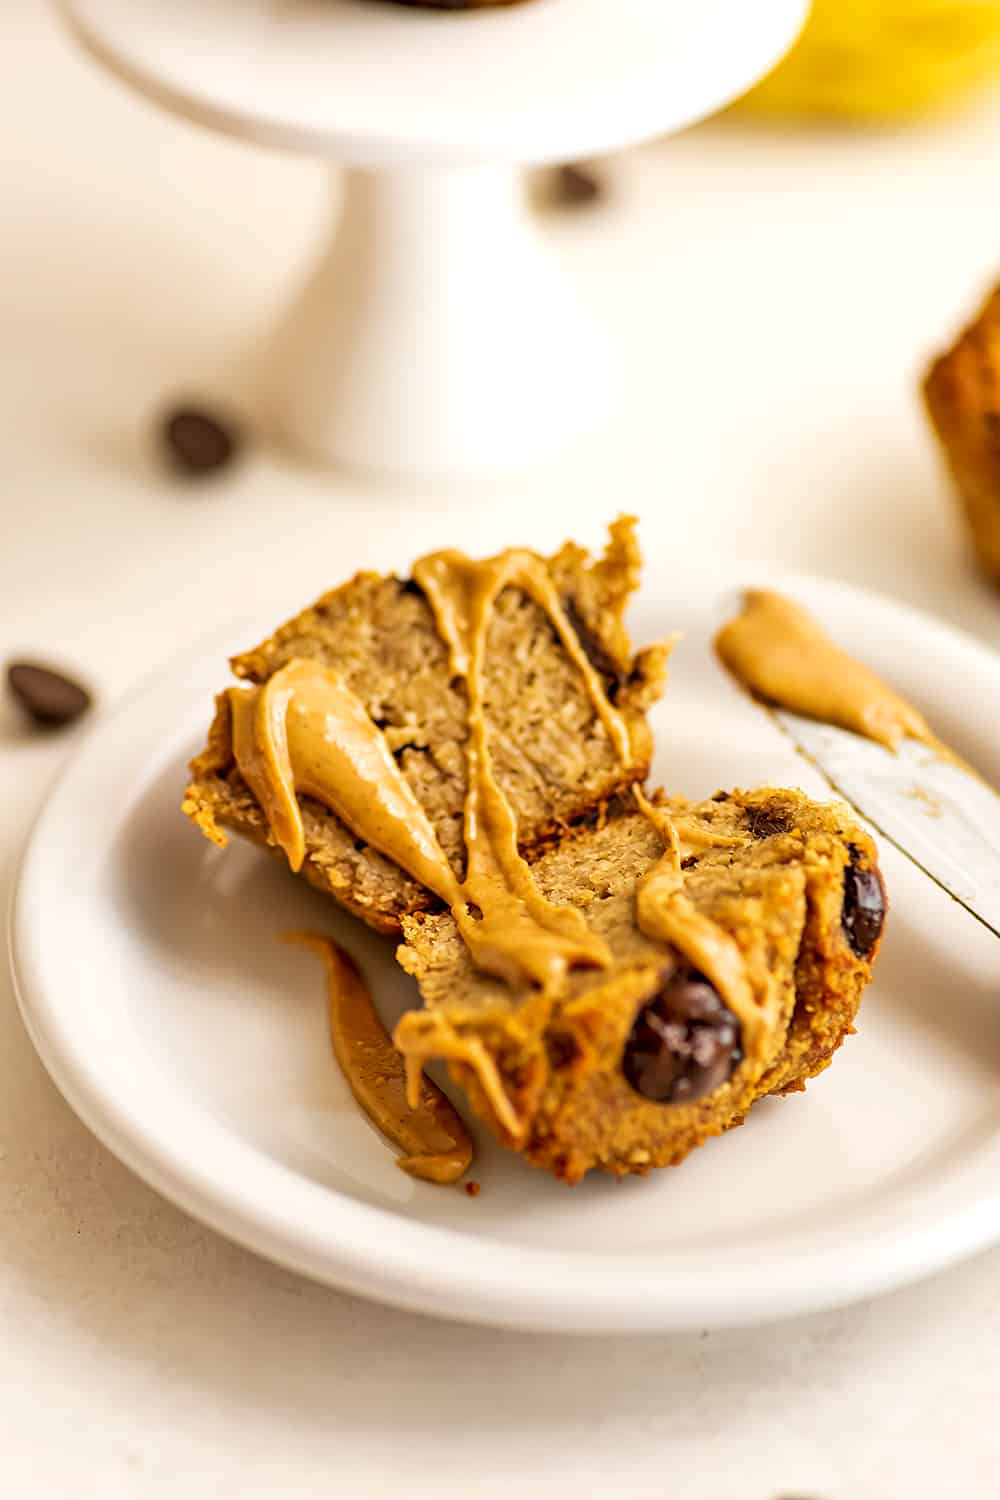 Almond flour banana muffin cut in half with peanut butter drizzled.